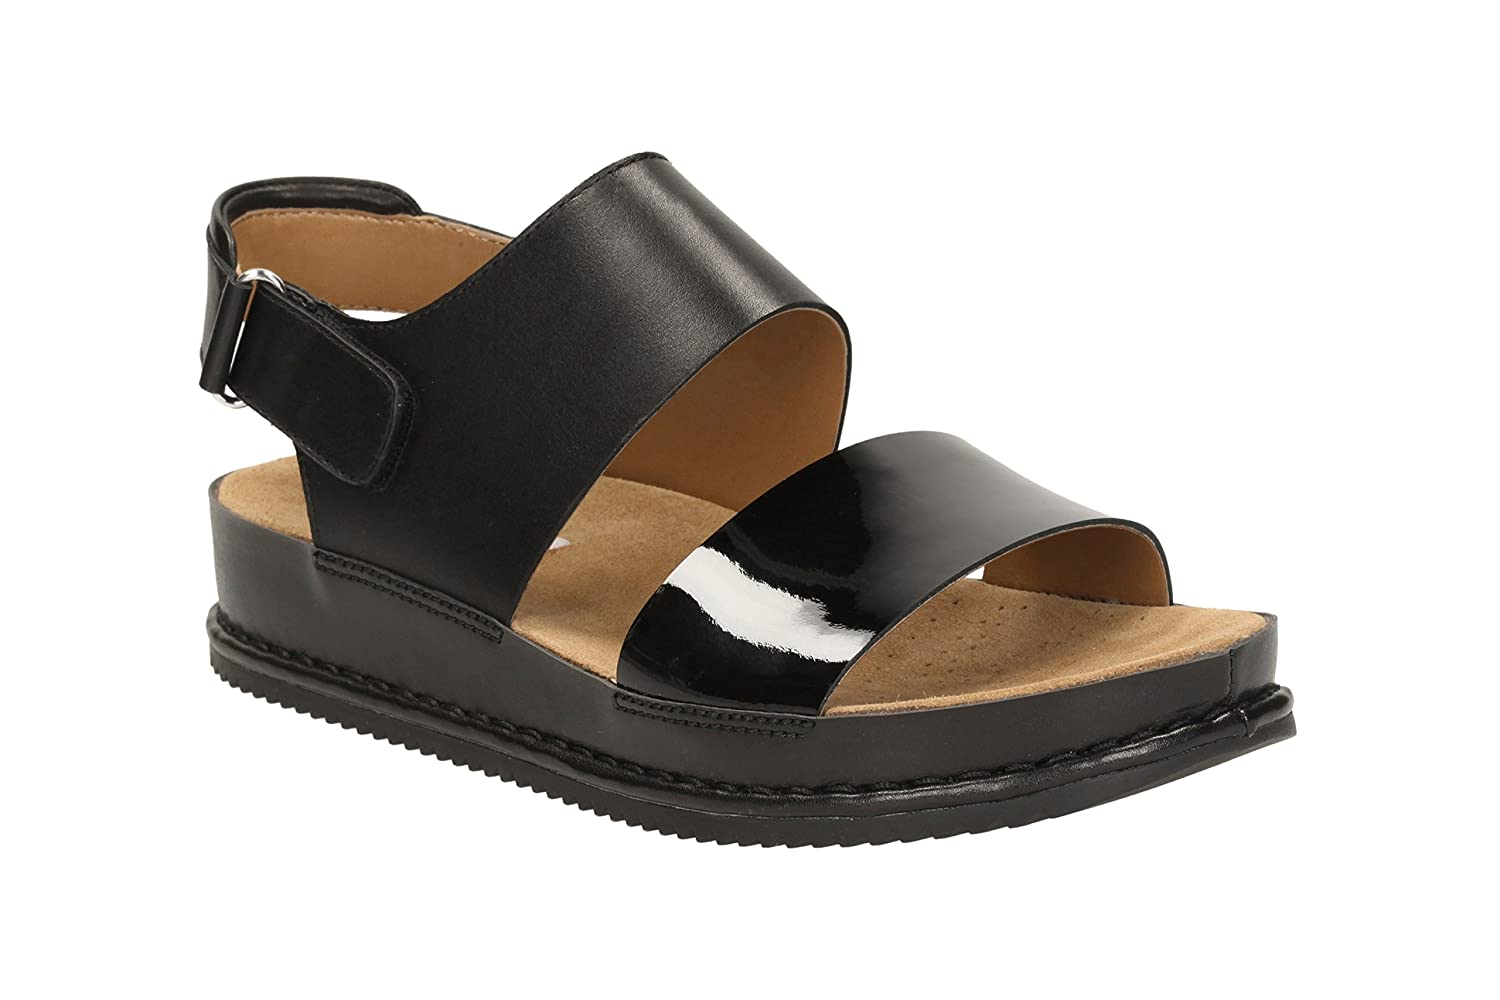 e385b01e3698 Clarks Women s Alderlake Sun Leather Fashion Sandals  Buy Online at Low  Prices in India - Amazon.in